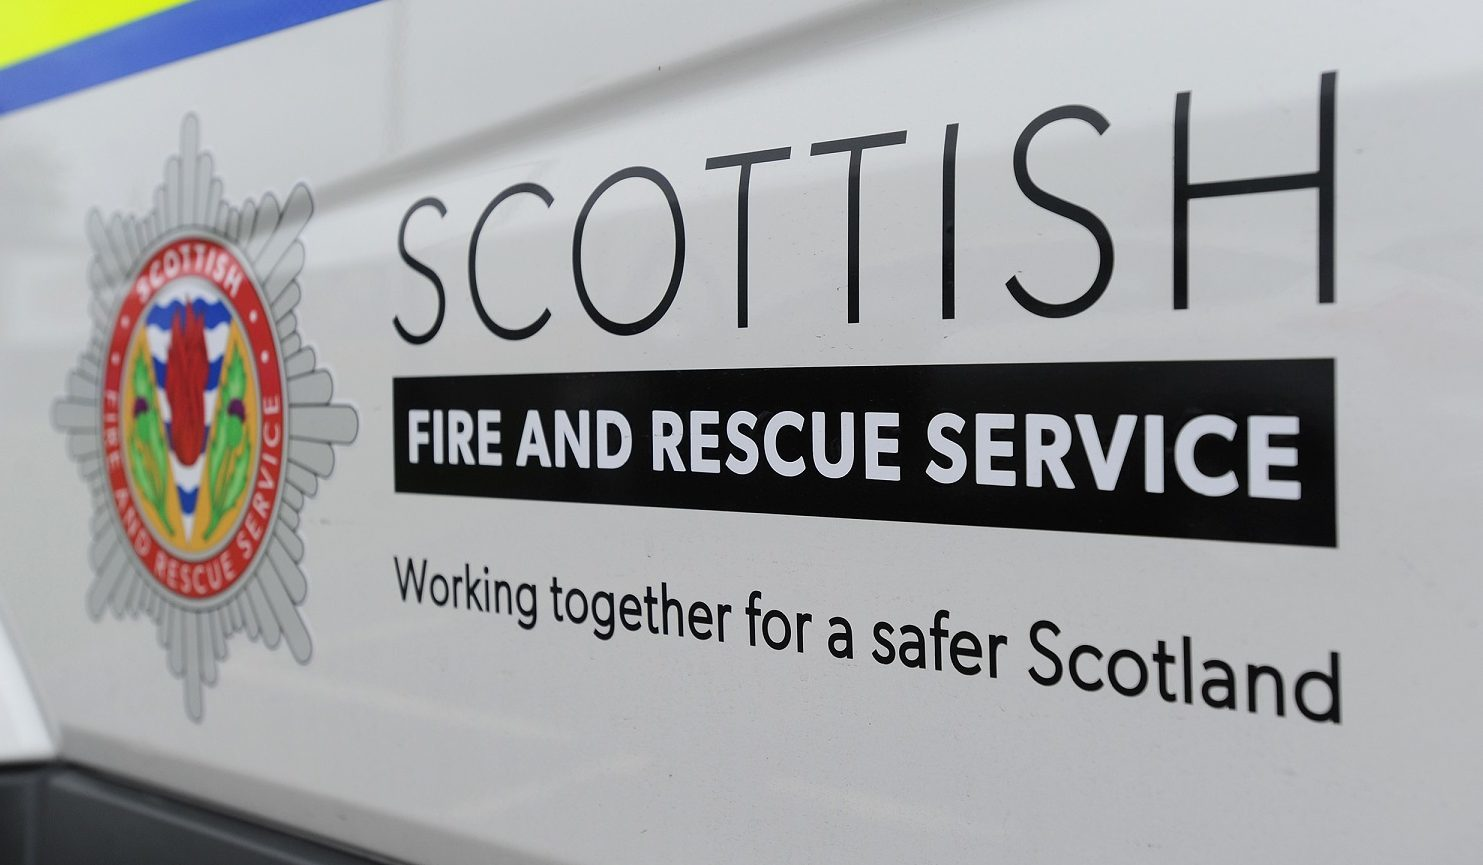 Firefighters from St Andrews and Cupar were called to attend.